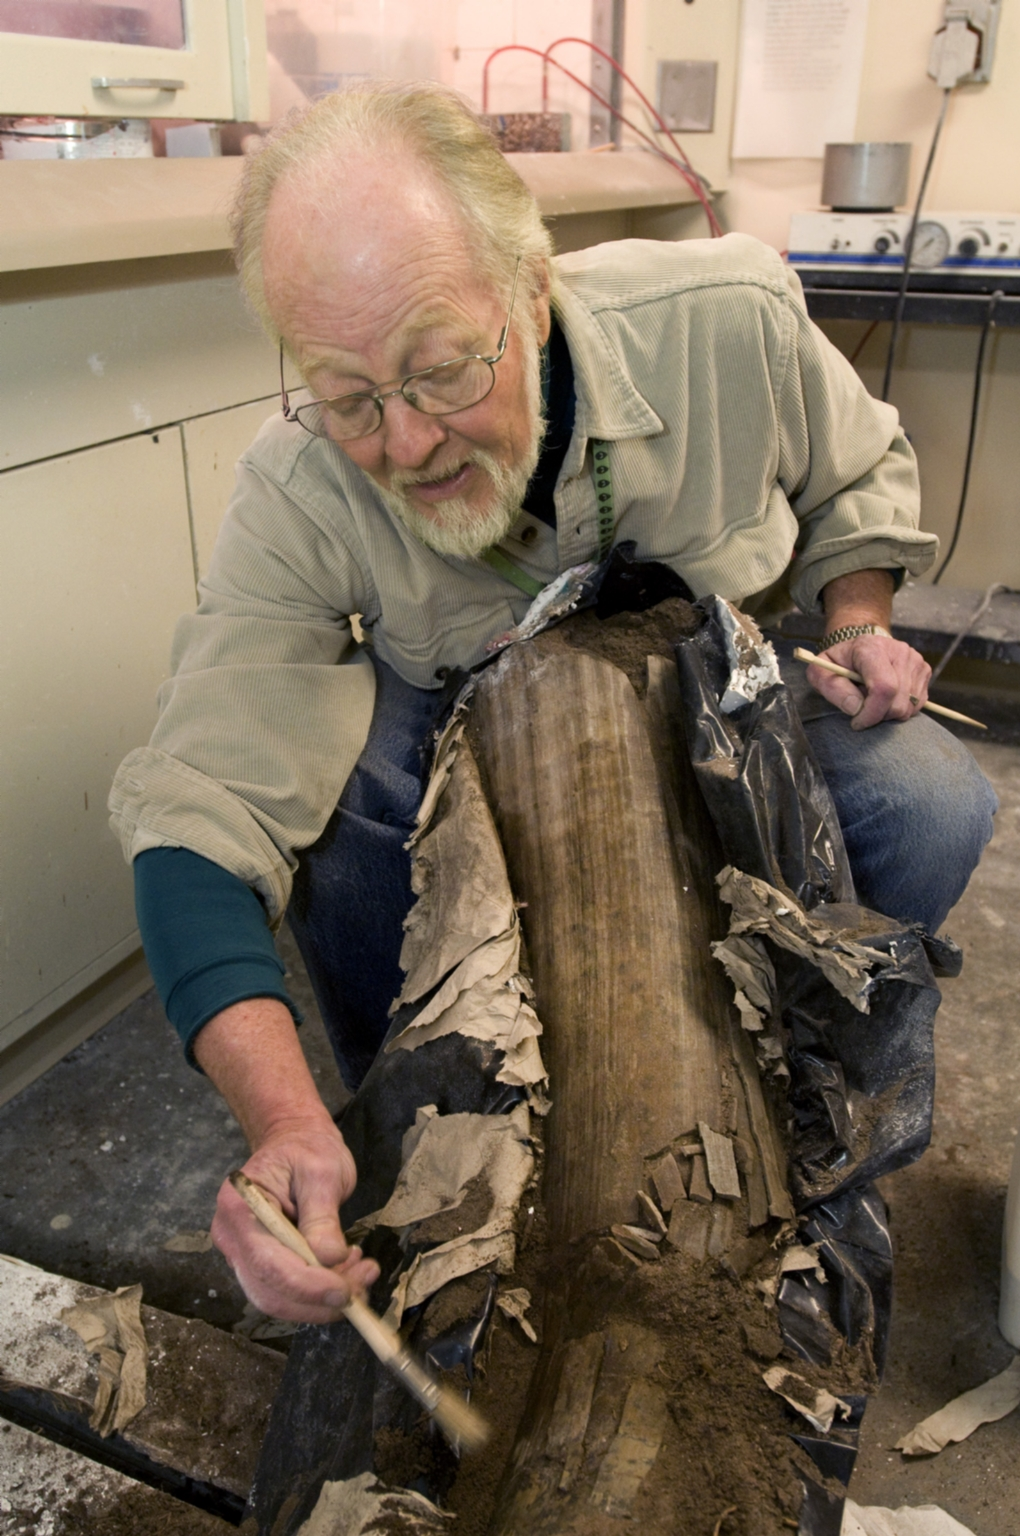 Cleaning a Fossil from Snomastadon Excavation in Paleo Lab